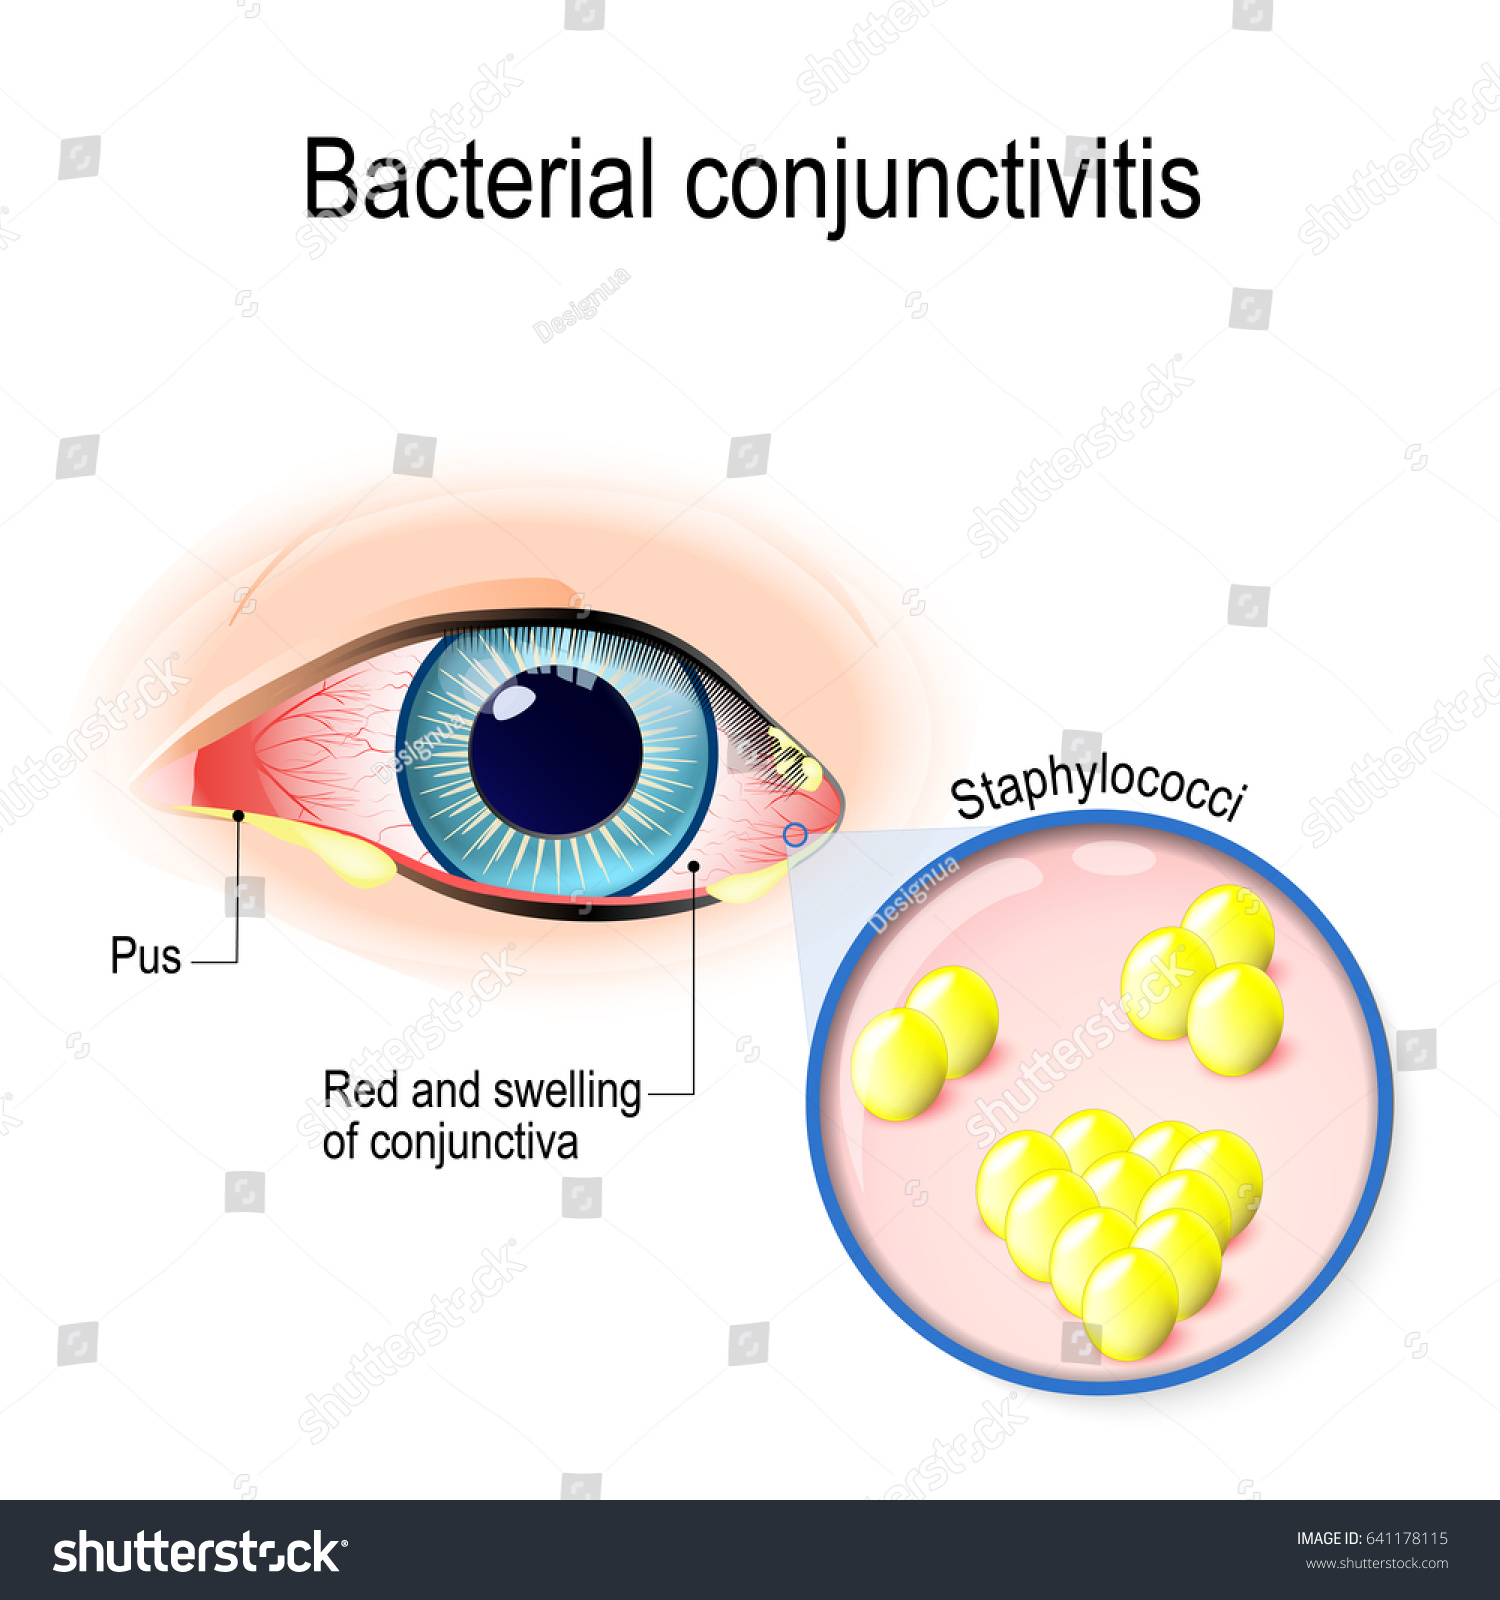 Allergic Conjunctivitis Vs Bacterial Pictures To Pin On: Bacterial Conjunctivitis Eye Conjunctivitis Bacteria That